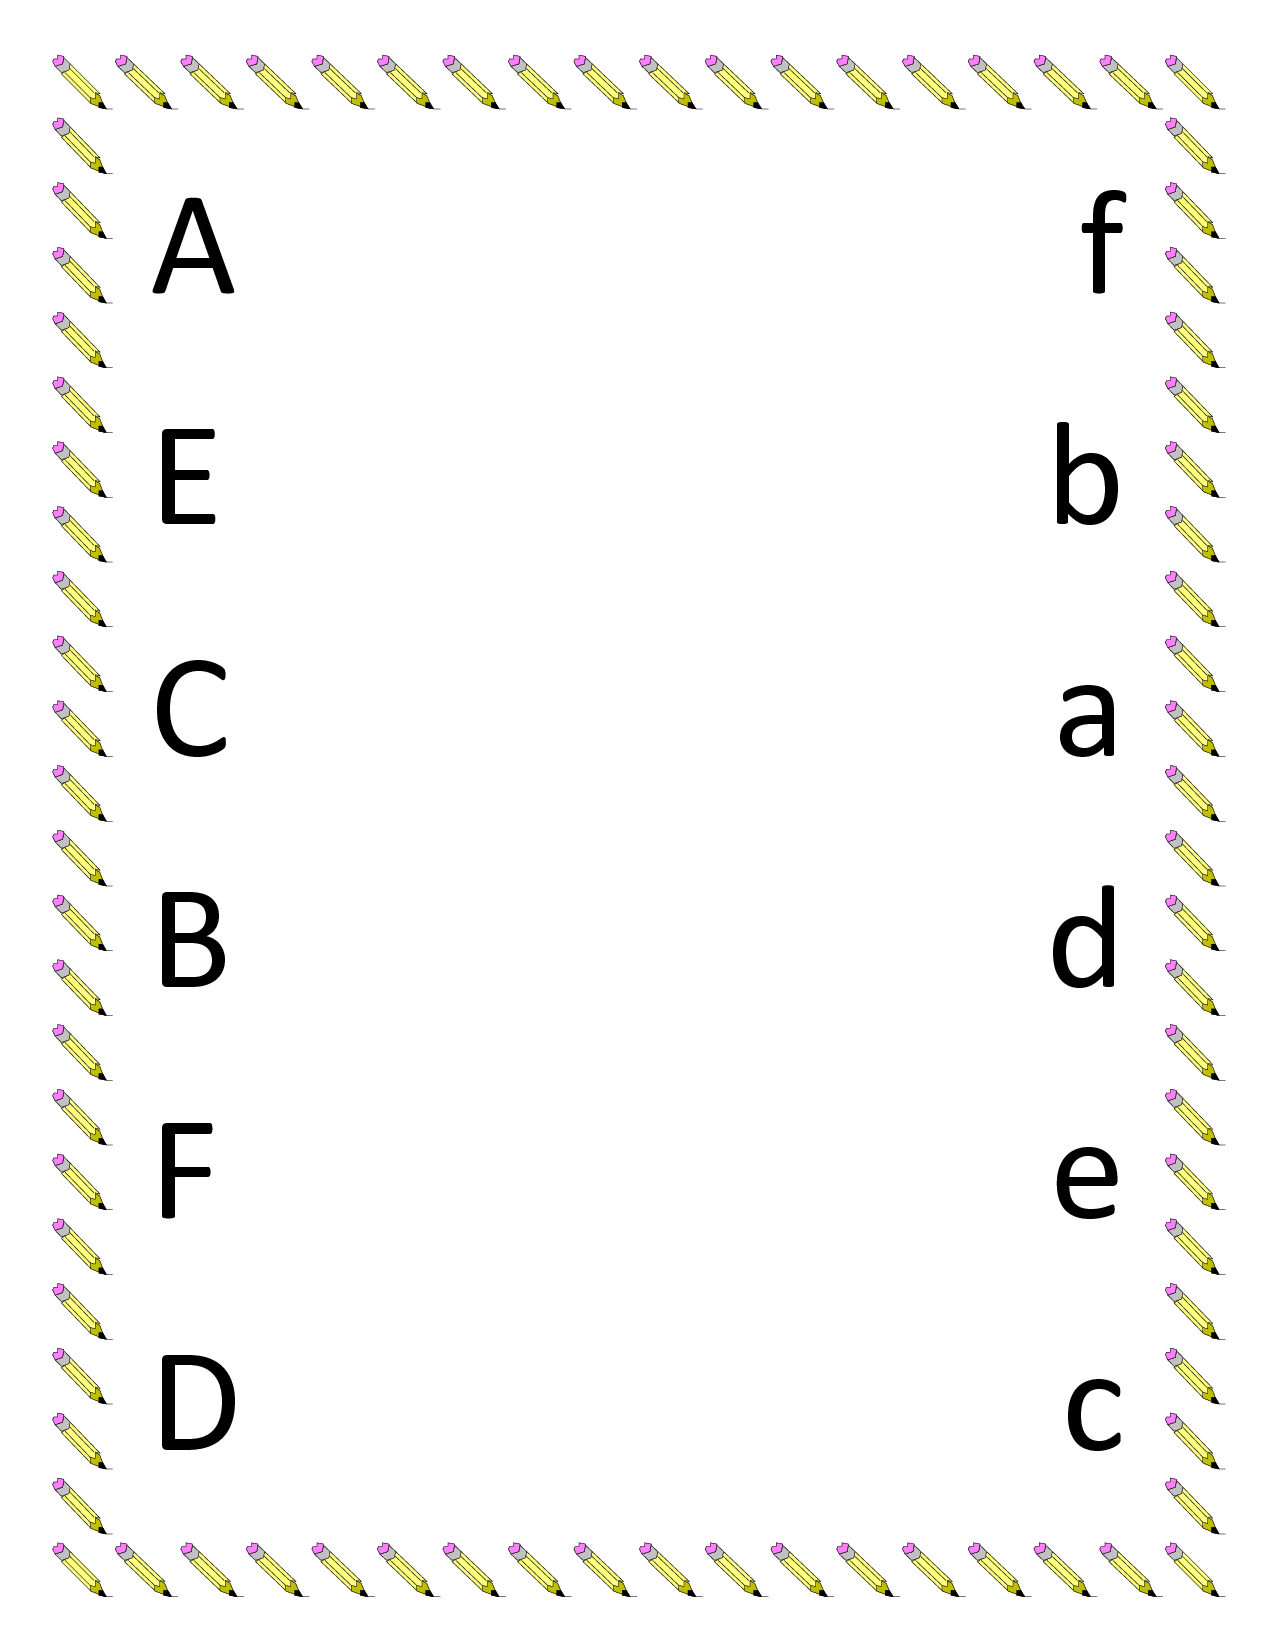 Alphabet Worksheets for Preschoolers | ABCs - Letter matching a-g ...